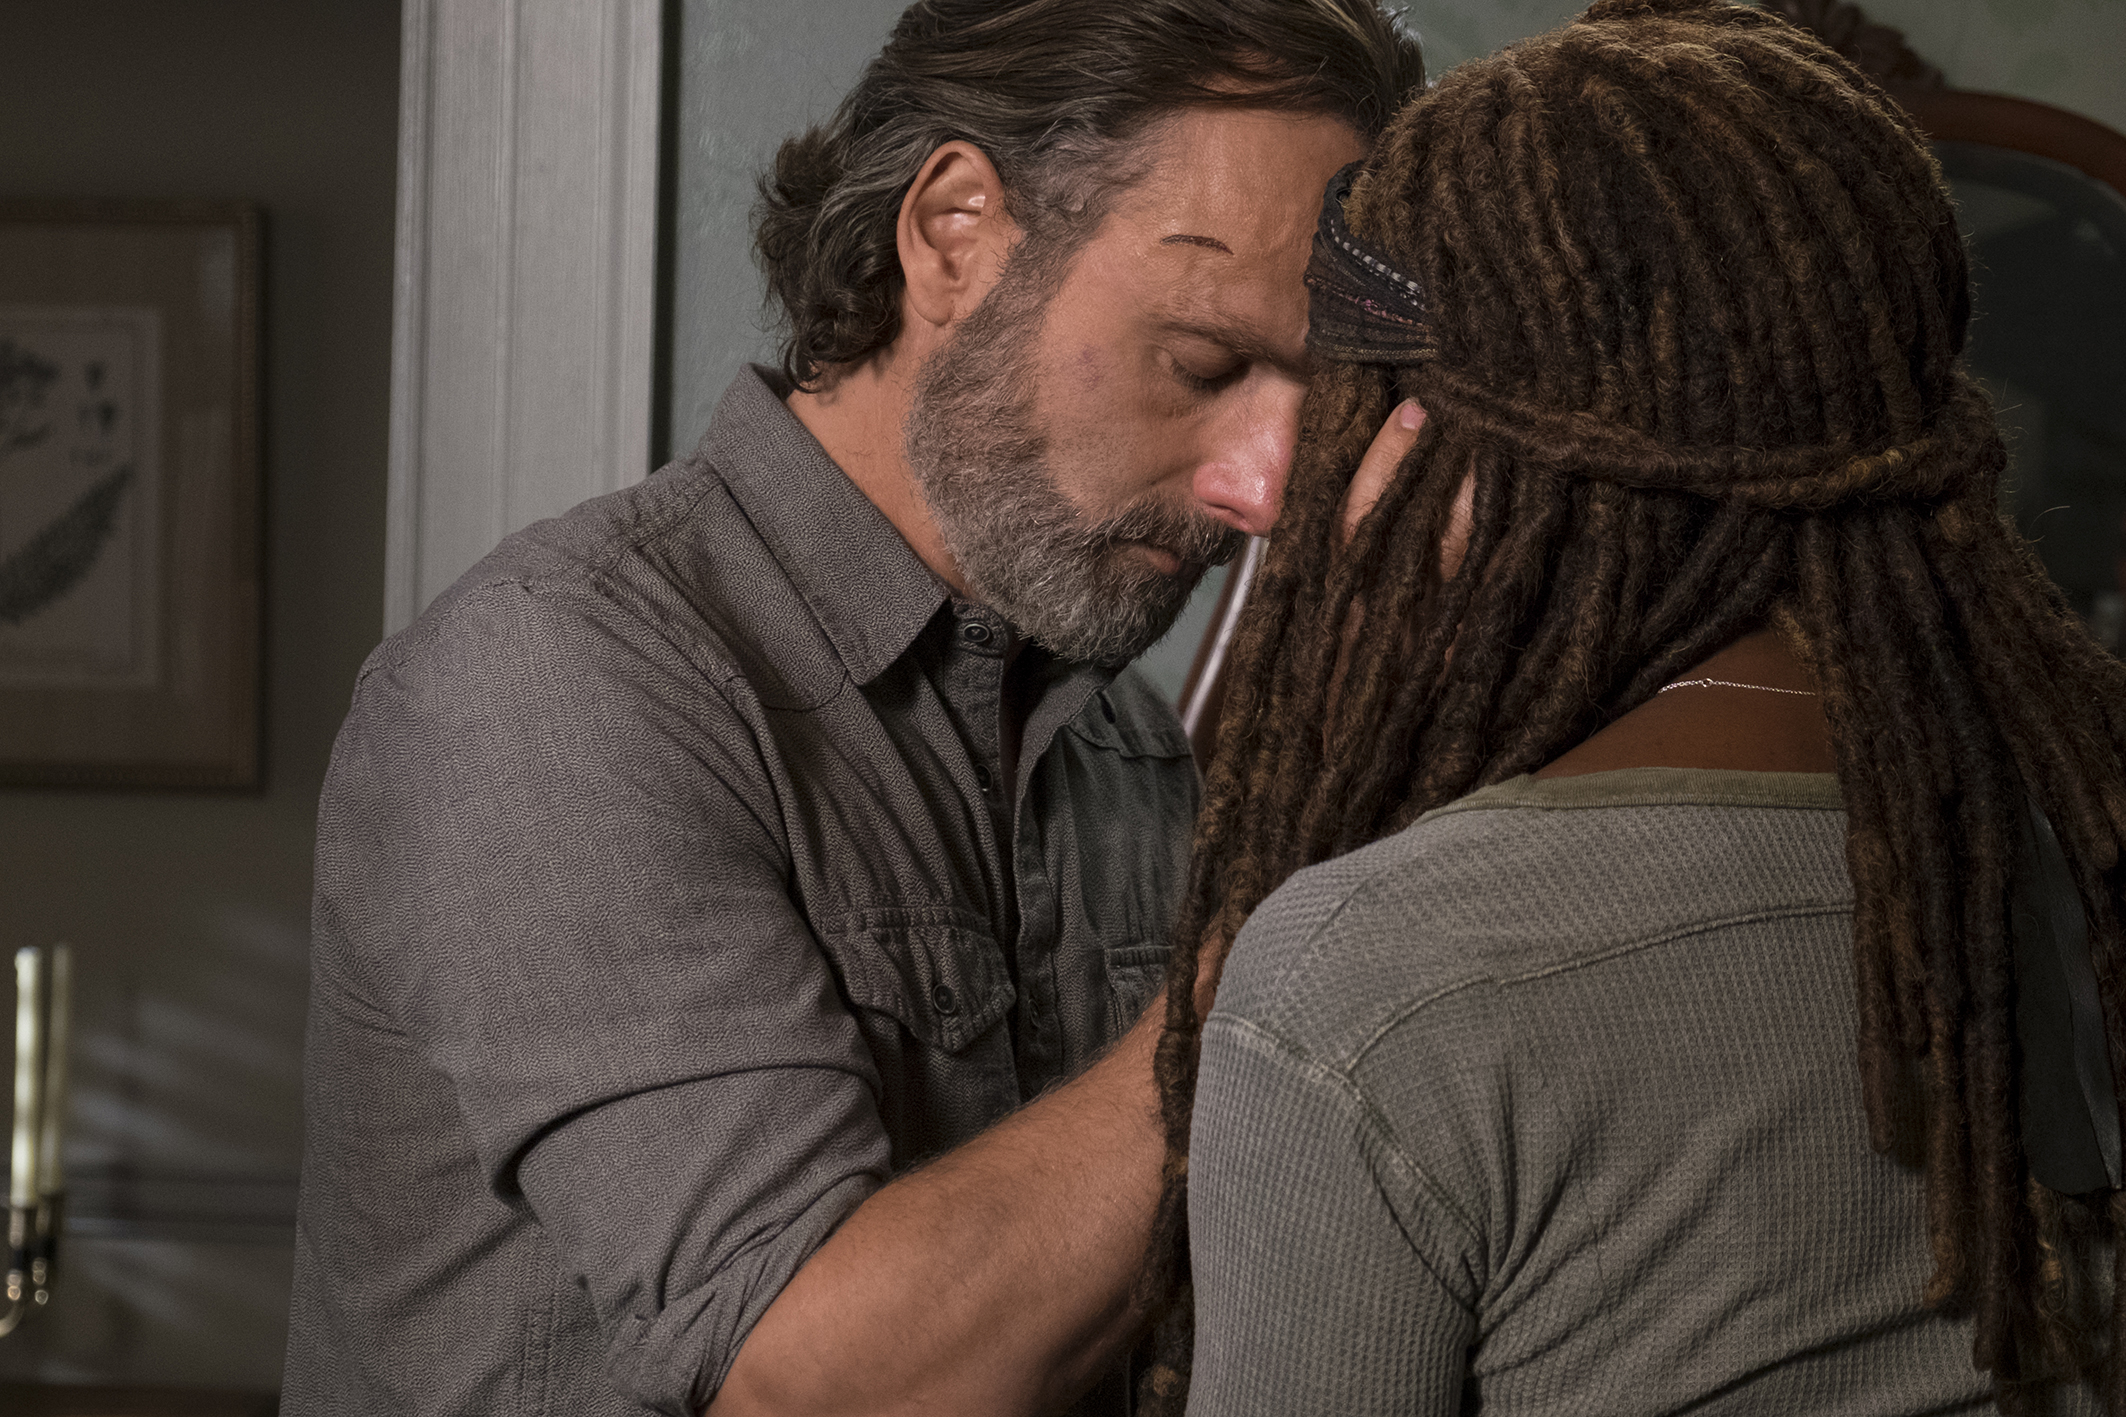 THE WALKING DEAD RECAP S8EP14 STILL GOTTA MEAN SOMETHING